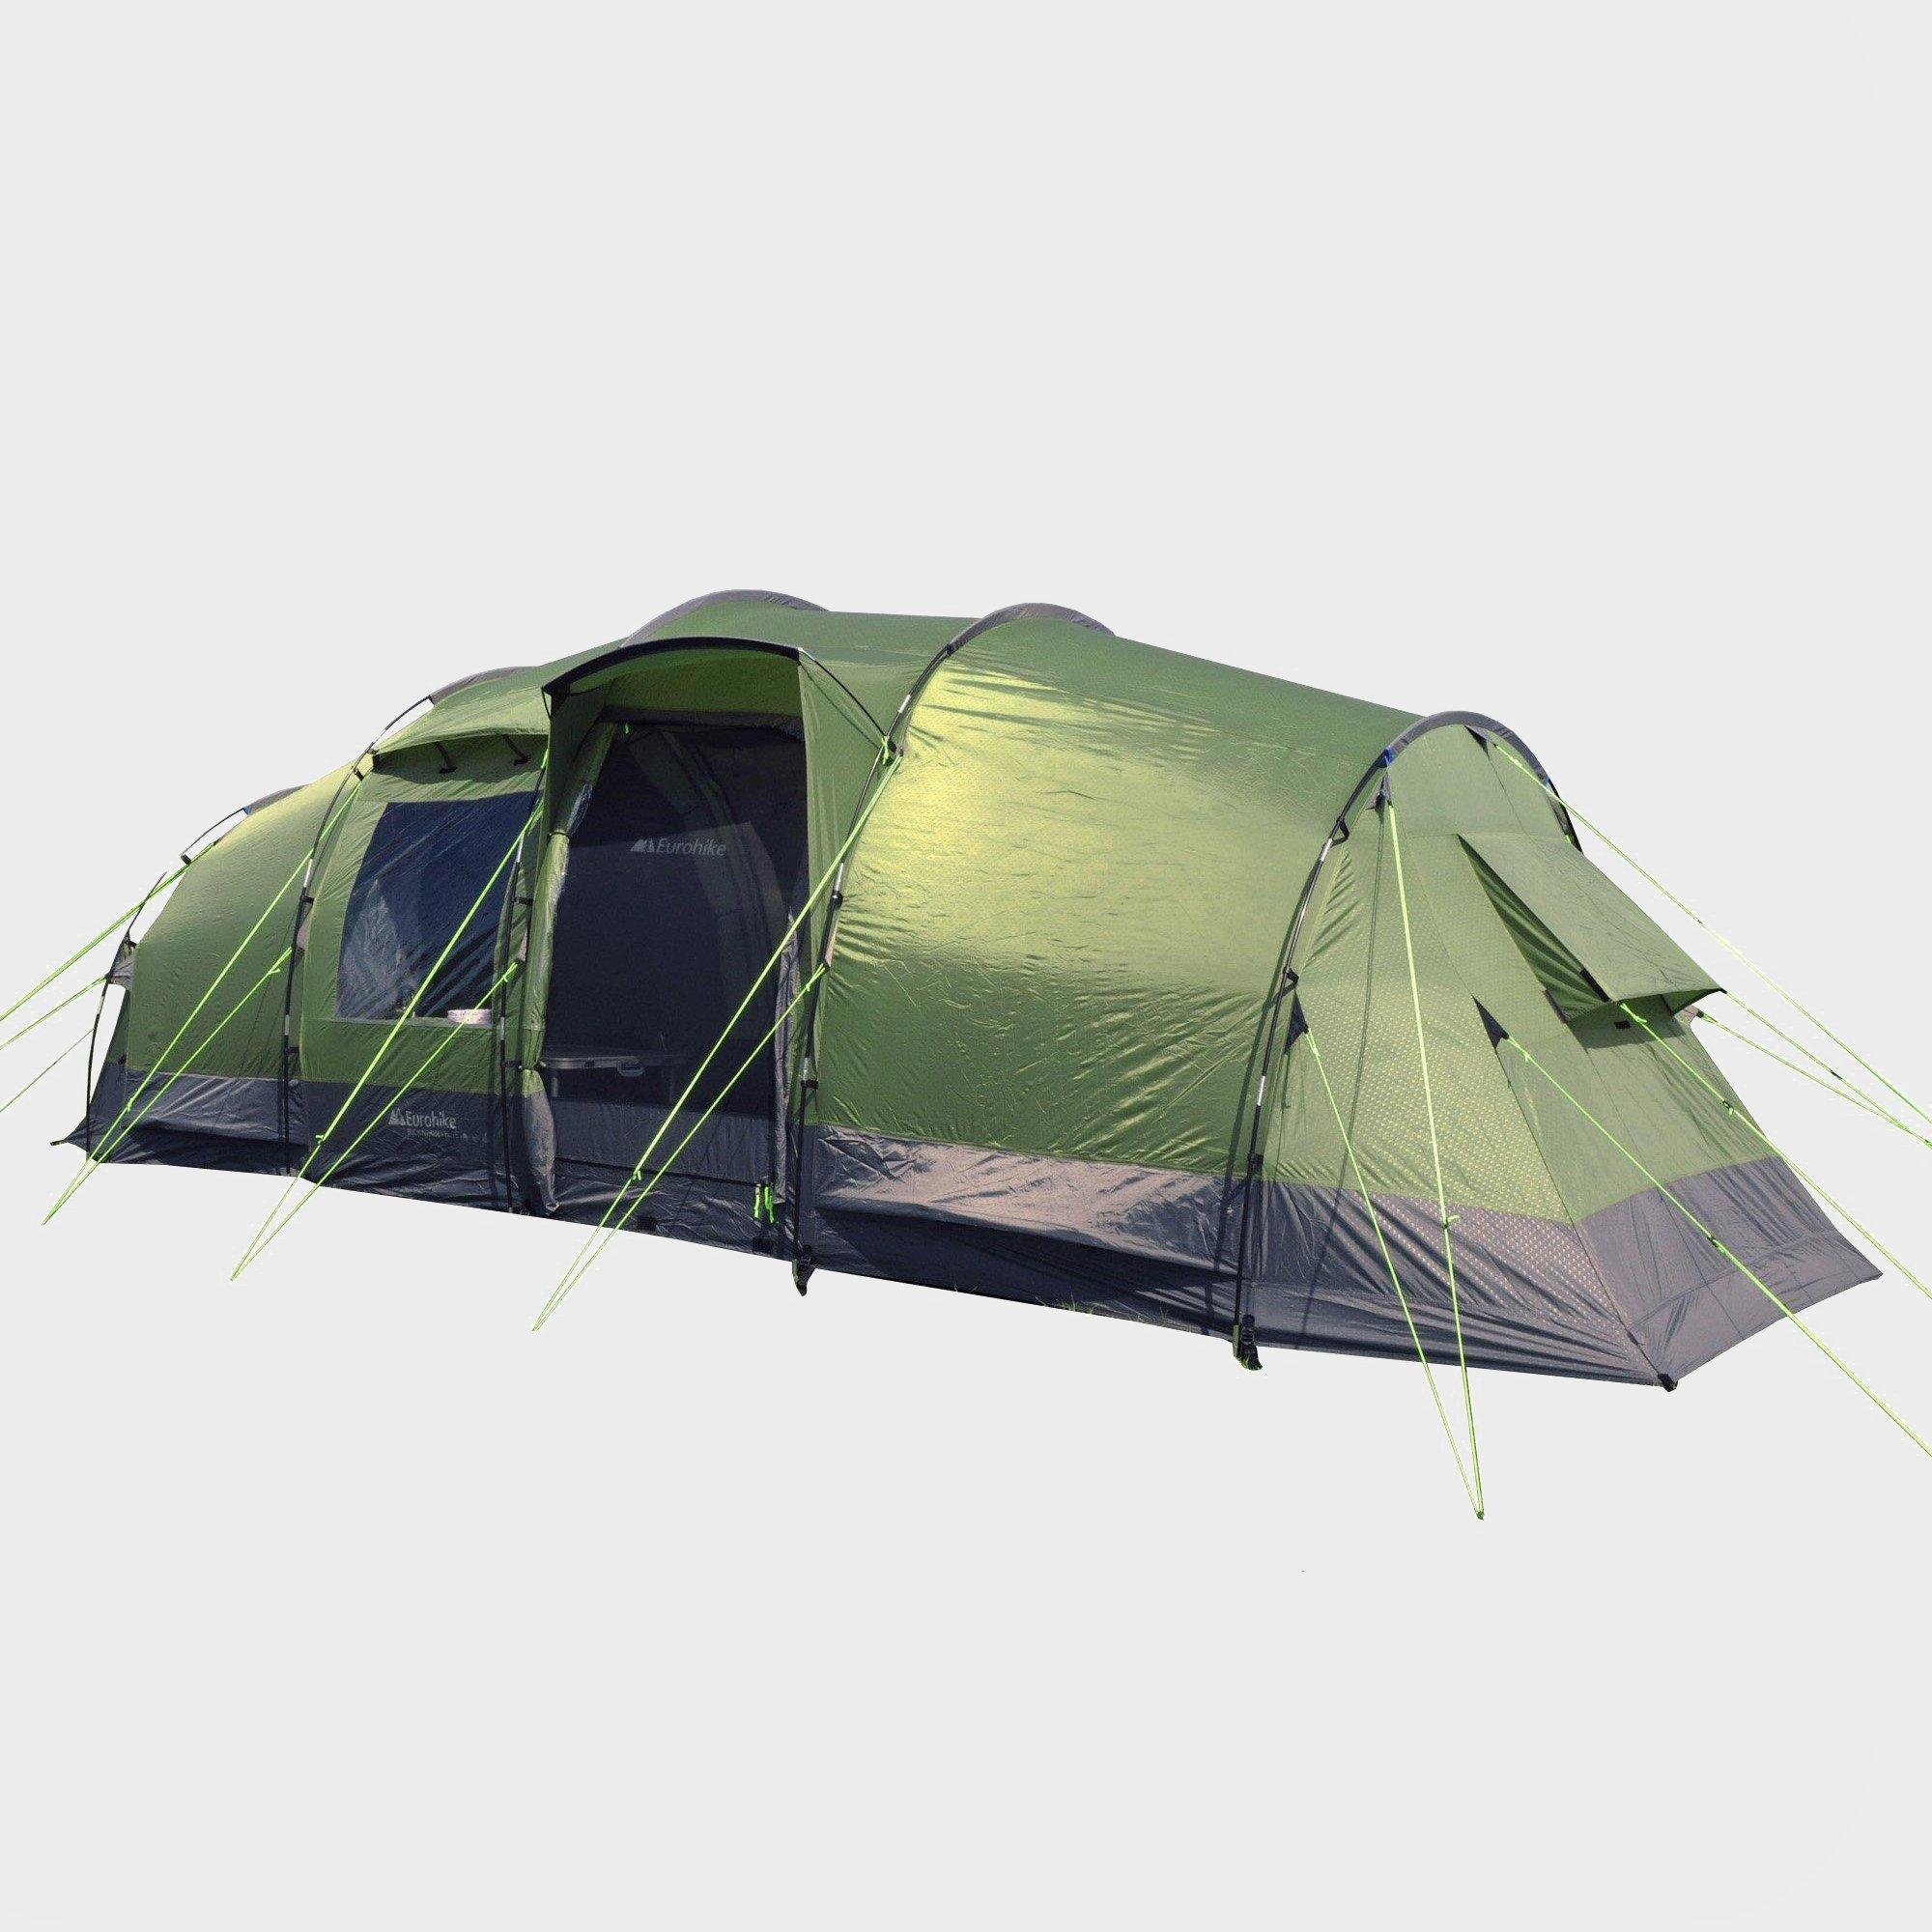 Buckingham Elite 6 Tent  sc 1 st  Millets & Tents | Family Backpacking u0026 Festival Tents | Millets